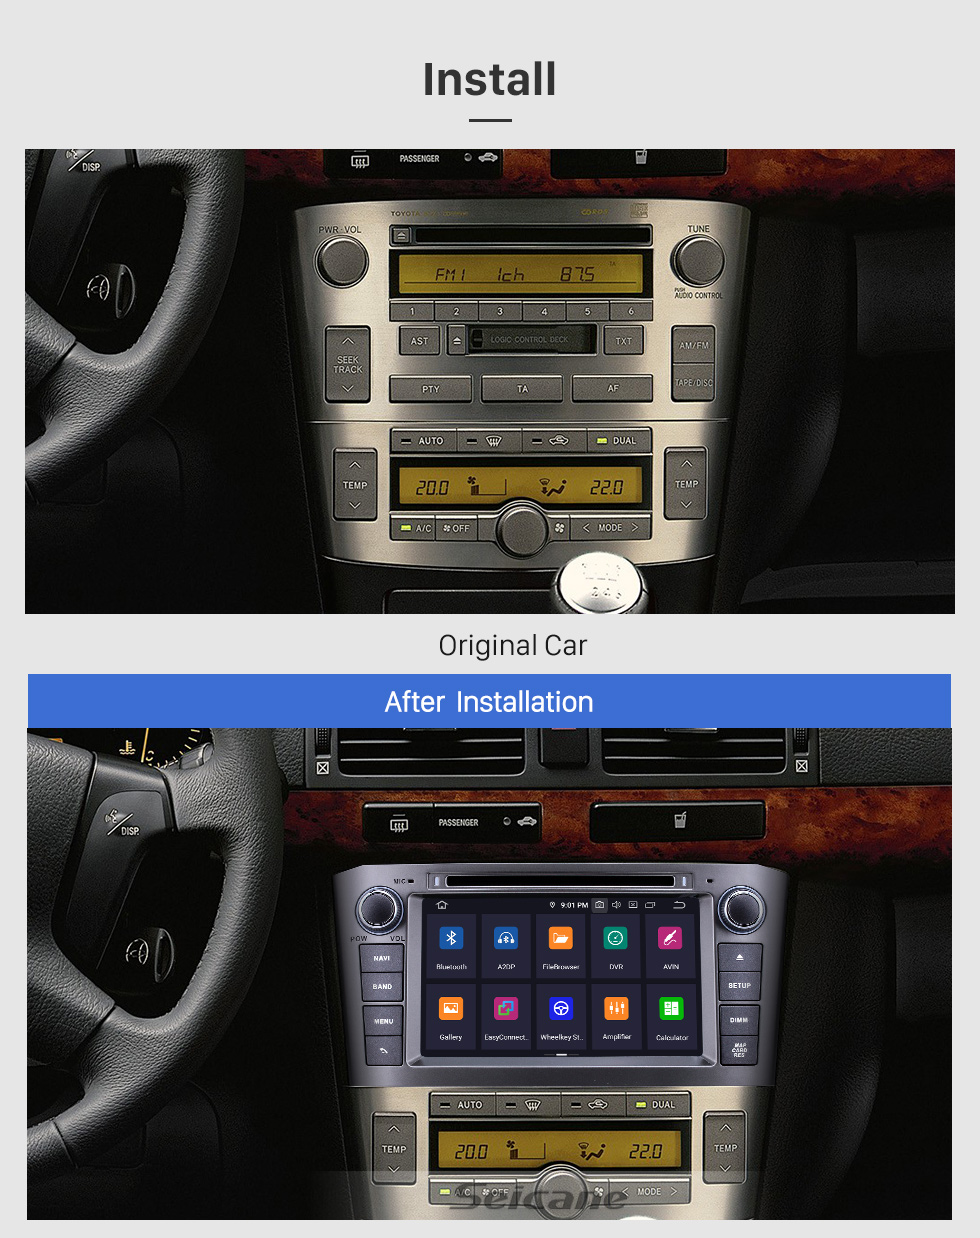 Seicane 2005 2006 2007 TOYOTA AVENSIS 7 inch Android 9.0 DVD Player GPS Navi Radio Support Bluetooth Mirror Link 1080P Video USB SD DVR WIFI OBD2 Aux